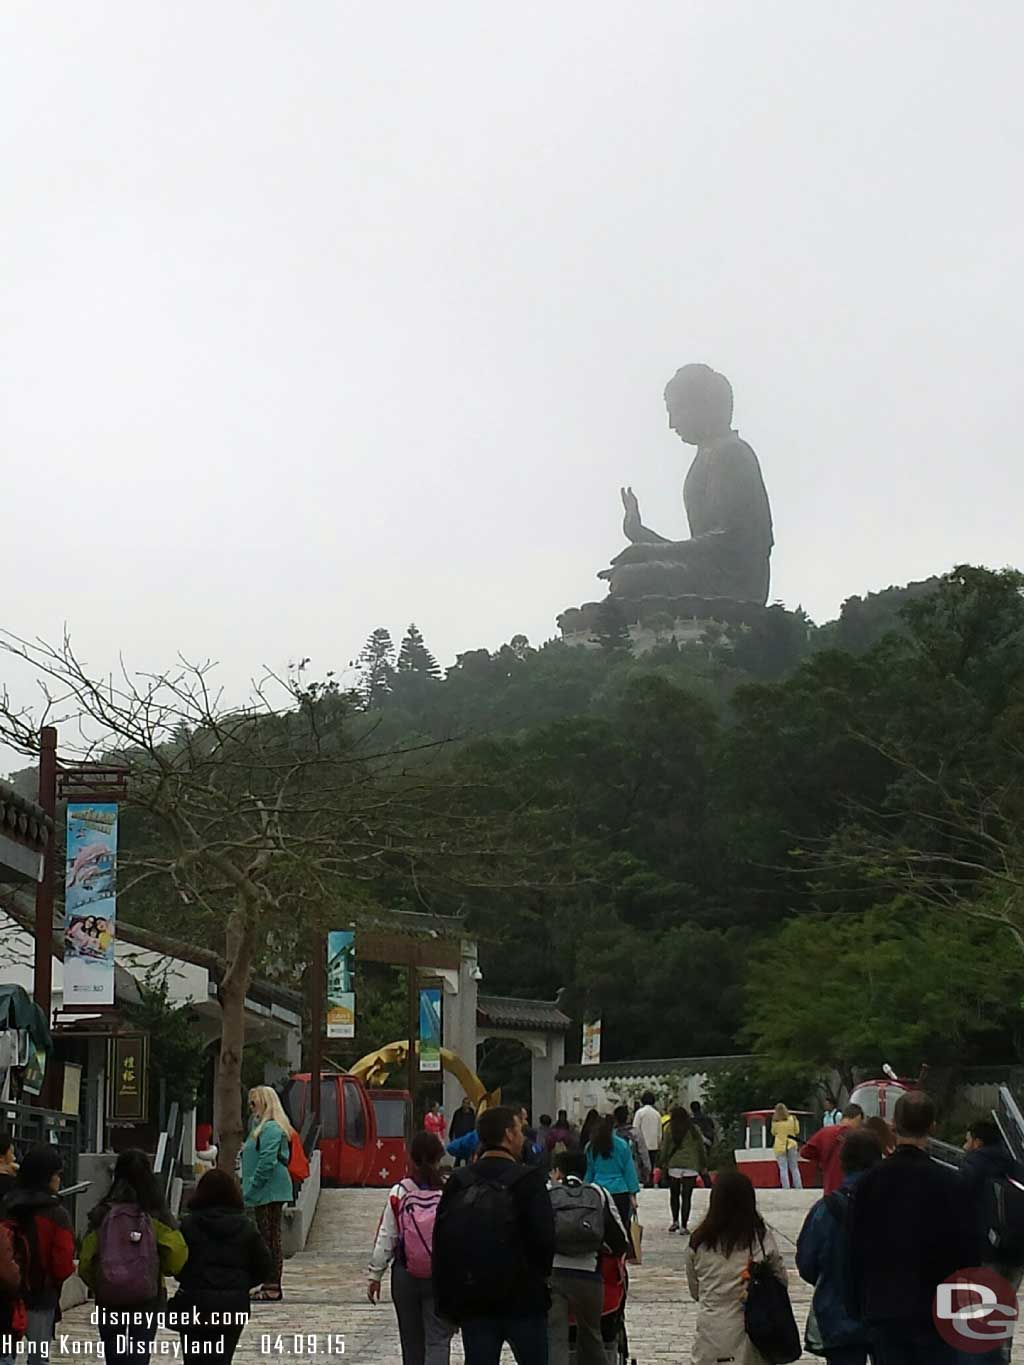 At Ngong Ping this morning to see the big buddha #HongKong